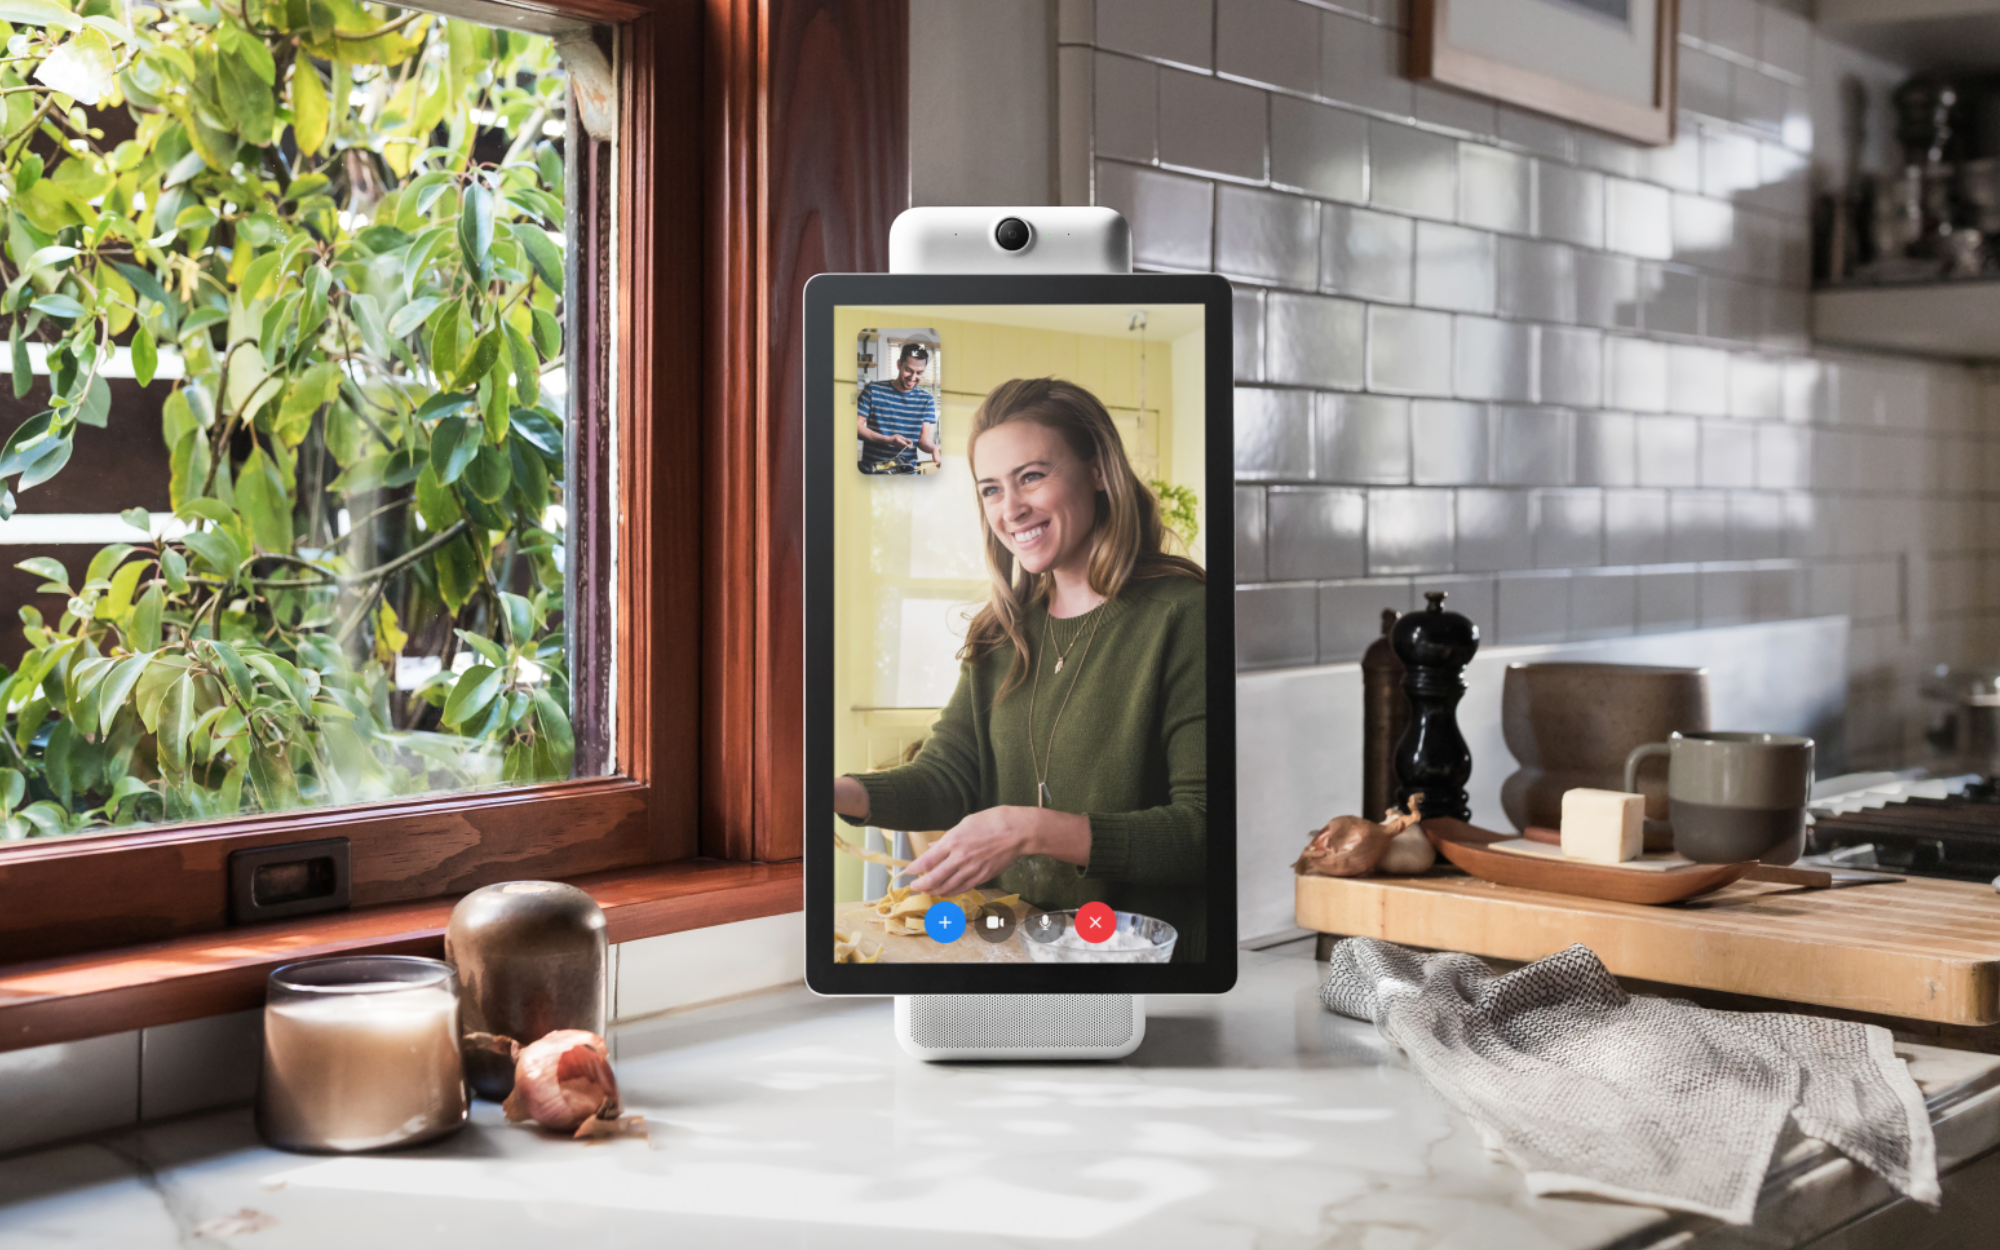 The Facebook Portal TV is a technology that enables the ageing population to stay in touch